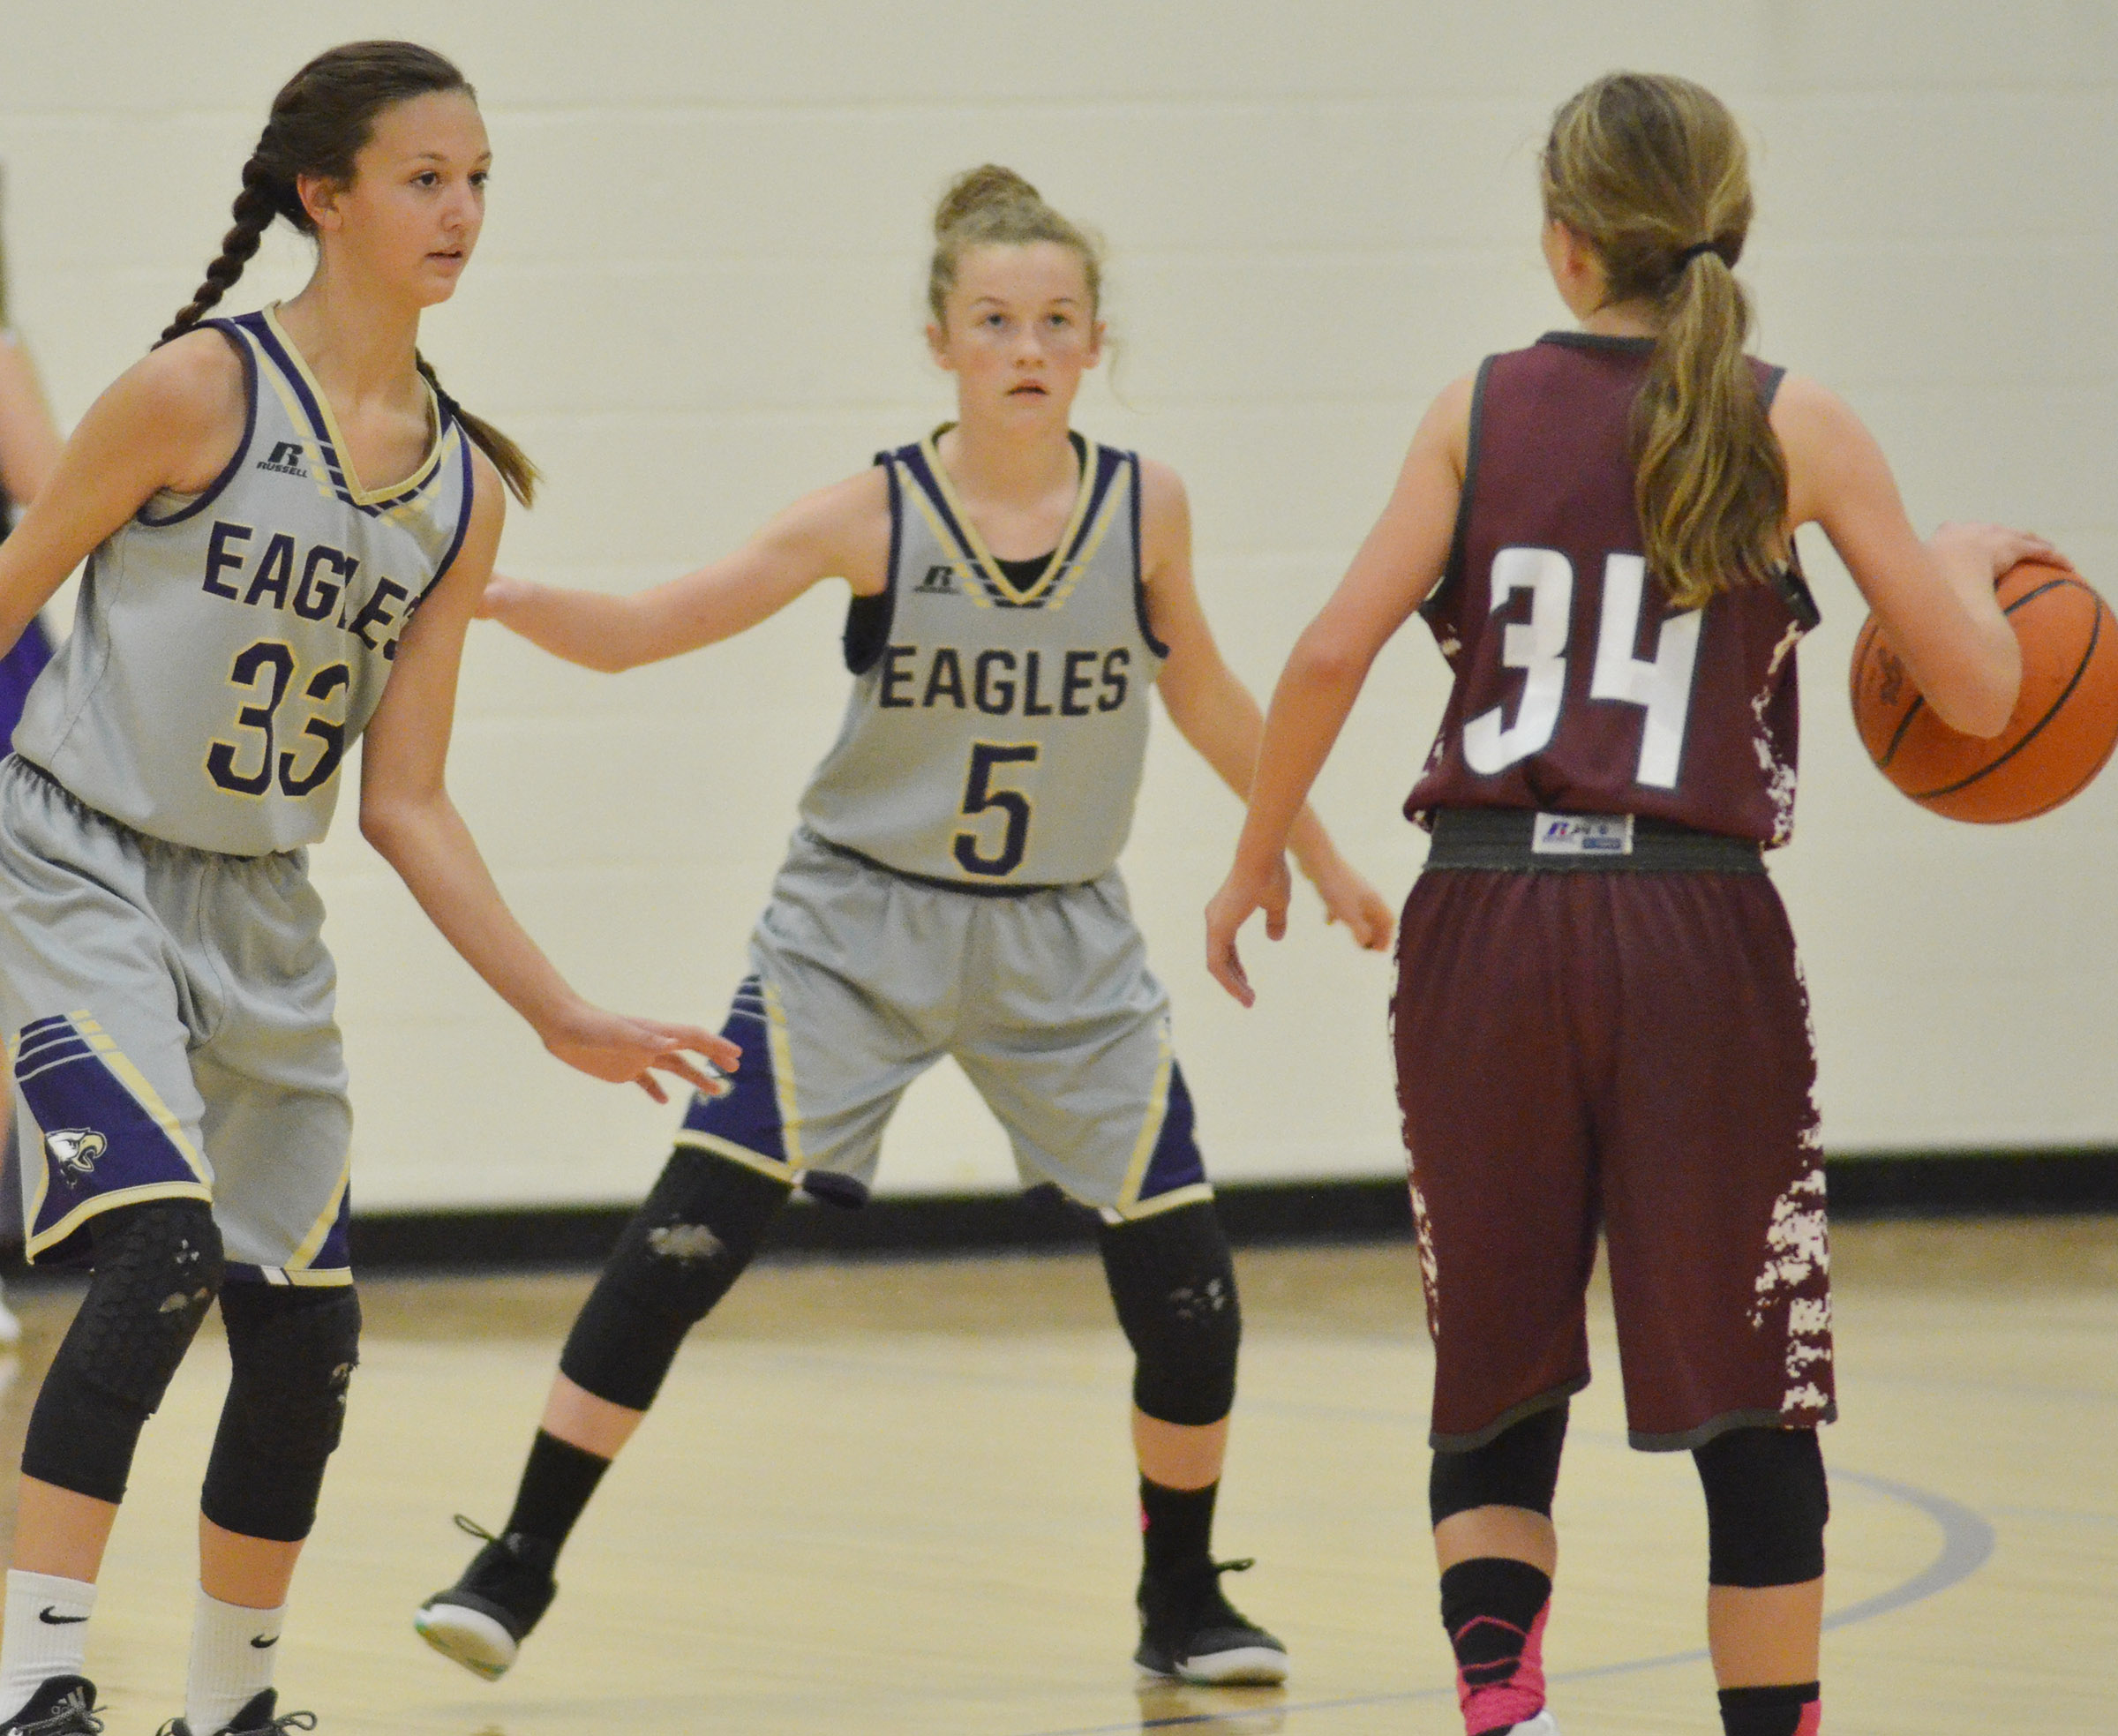 CMS seventh-graders Bri Hayes, at left, and Dakota Slone play defense.